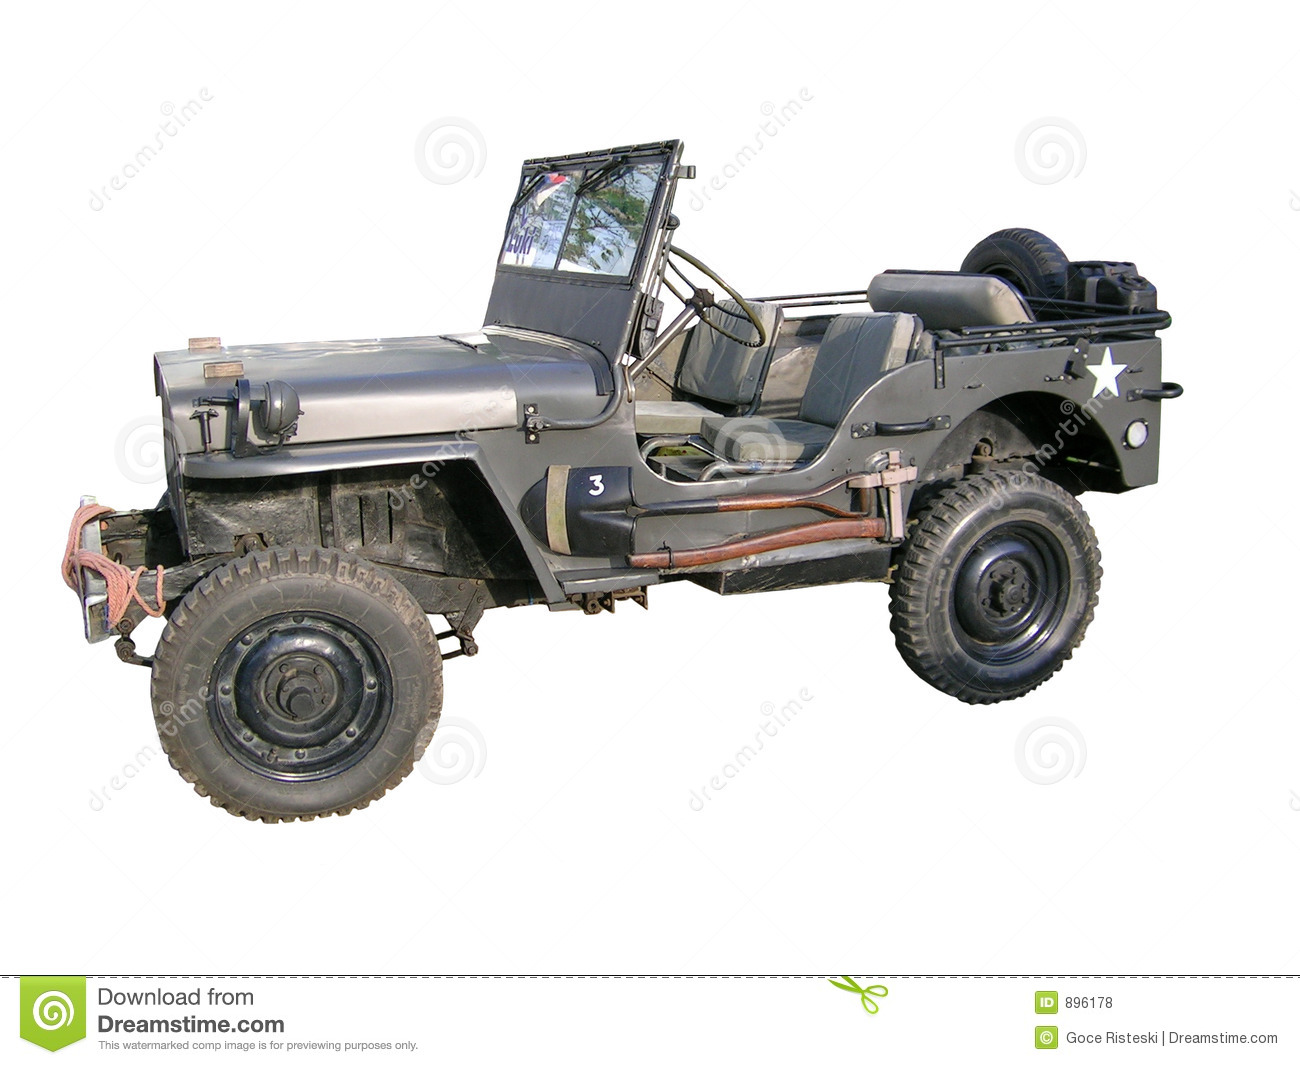 Jeep stary